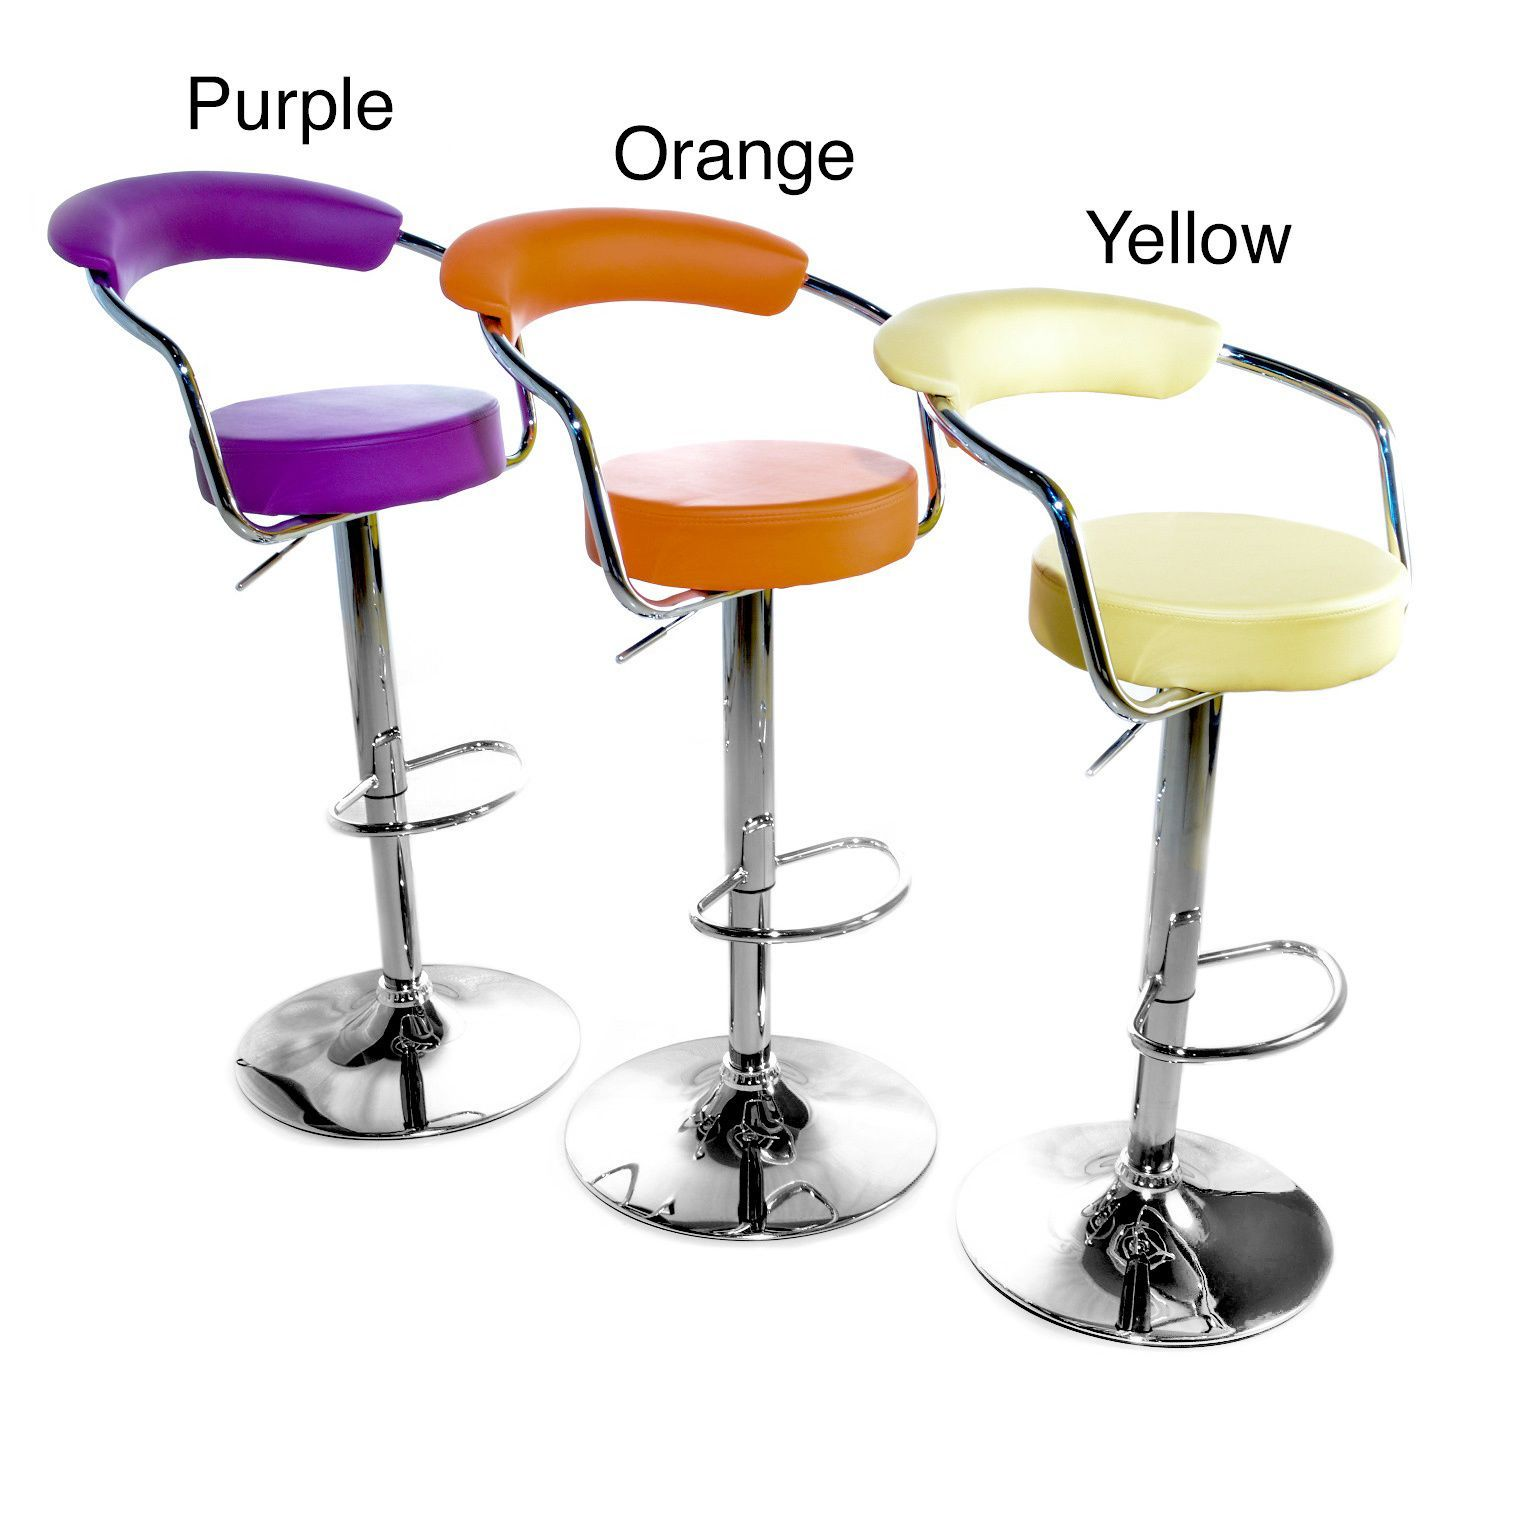 This Vibrant Set Of Two Modern Adjustable Barstools Is A